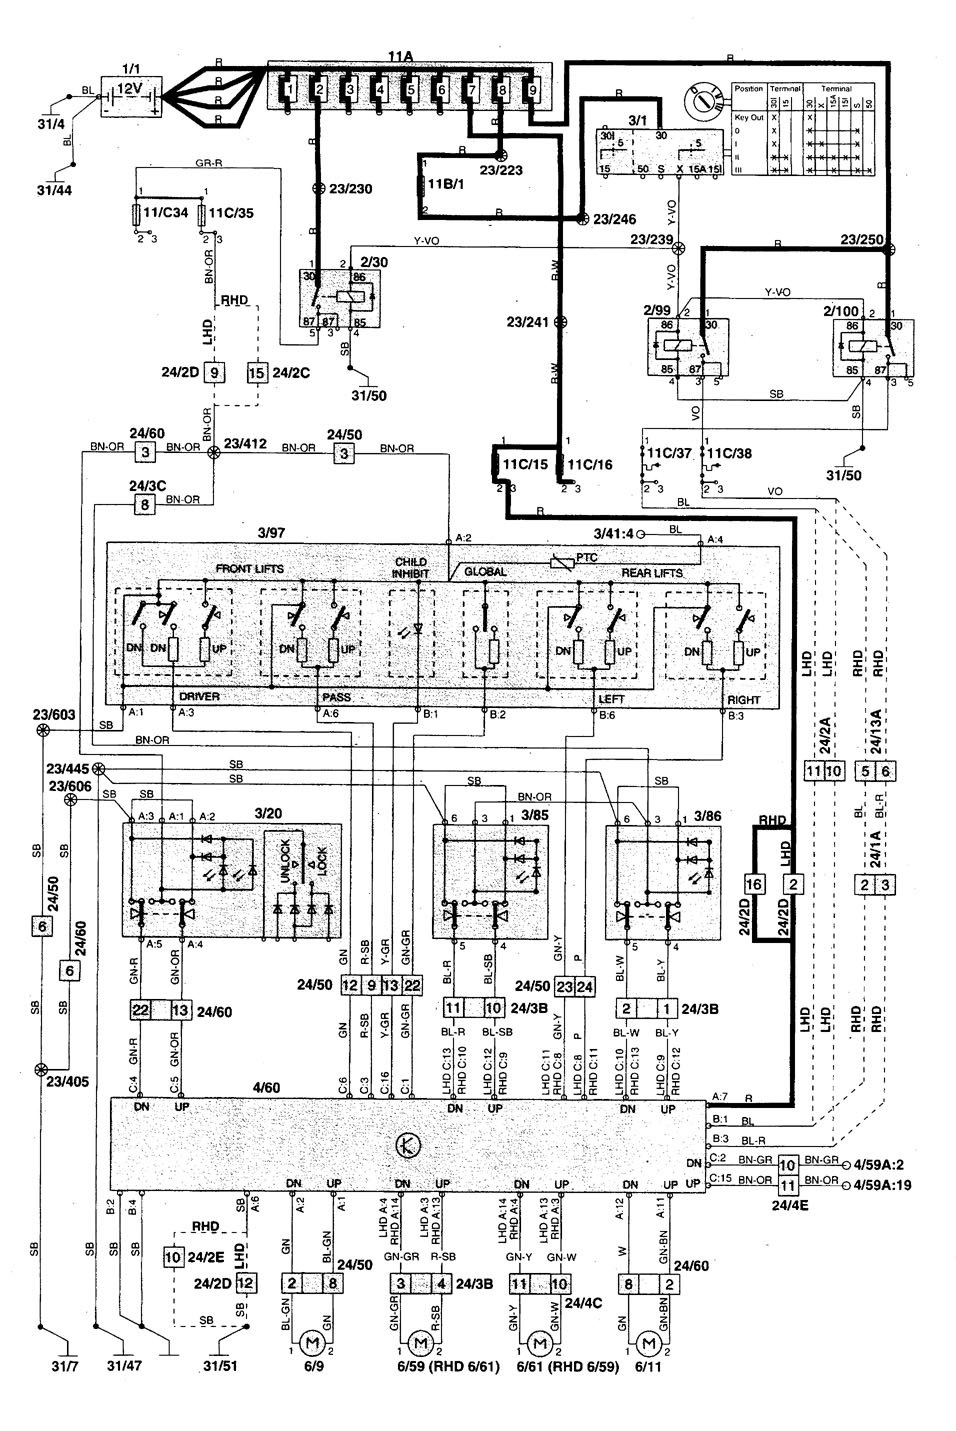 Volvo C70  1998 - 2004  - Wiring Diagrams - Power Windows